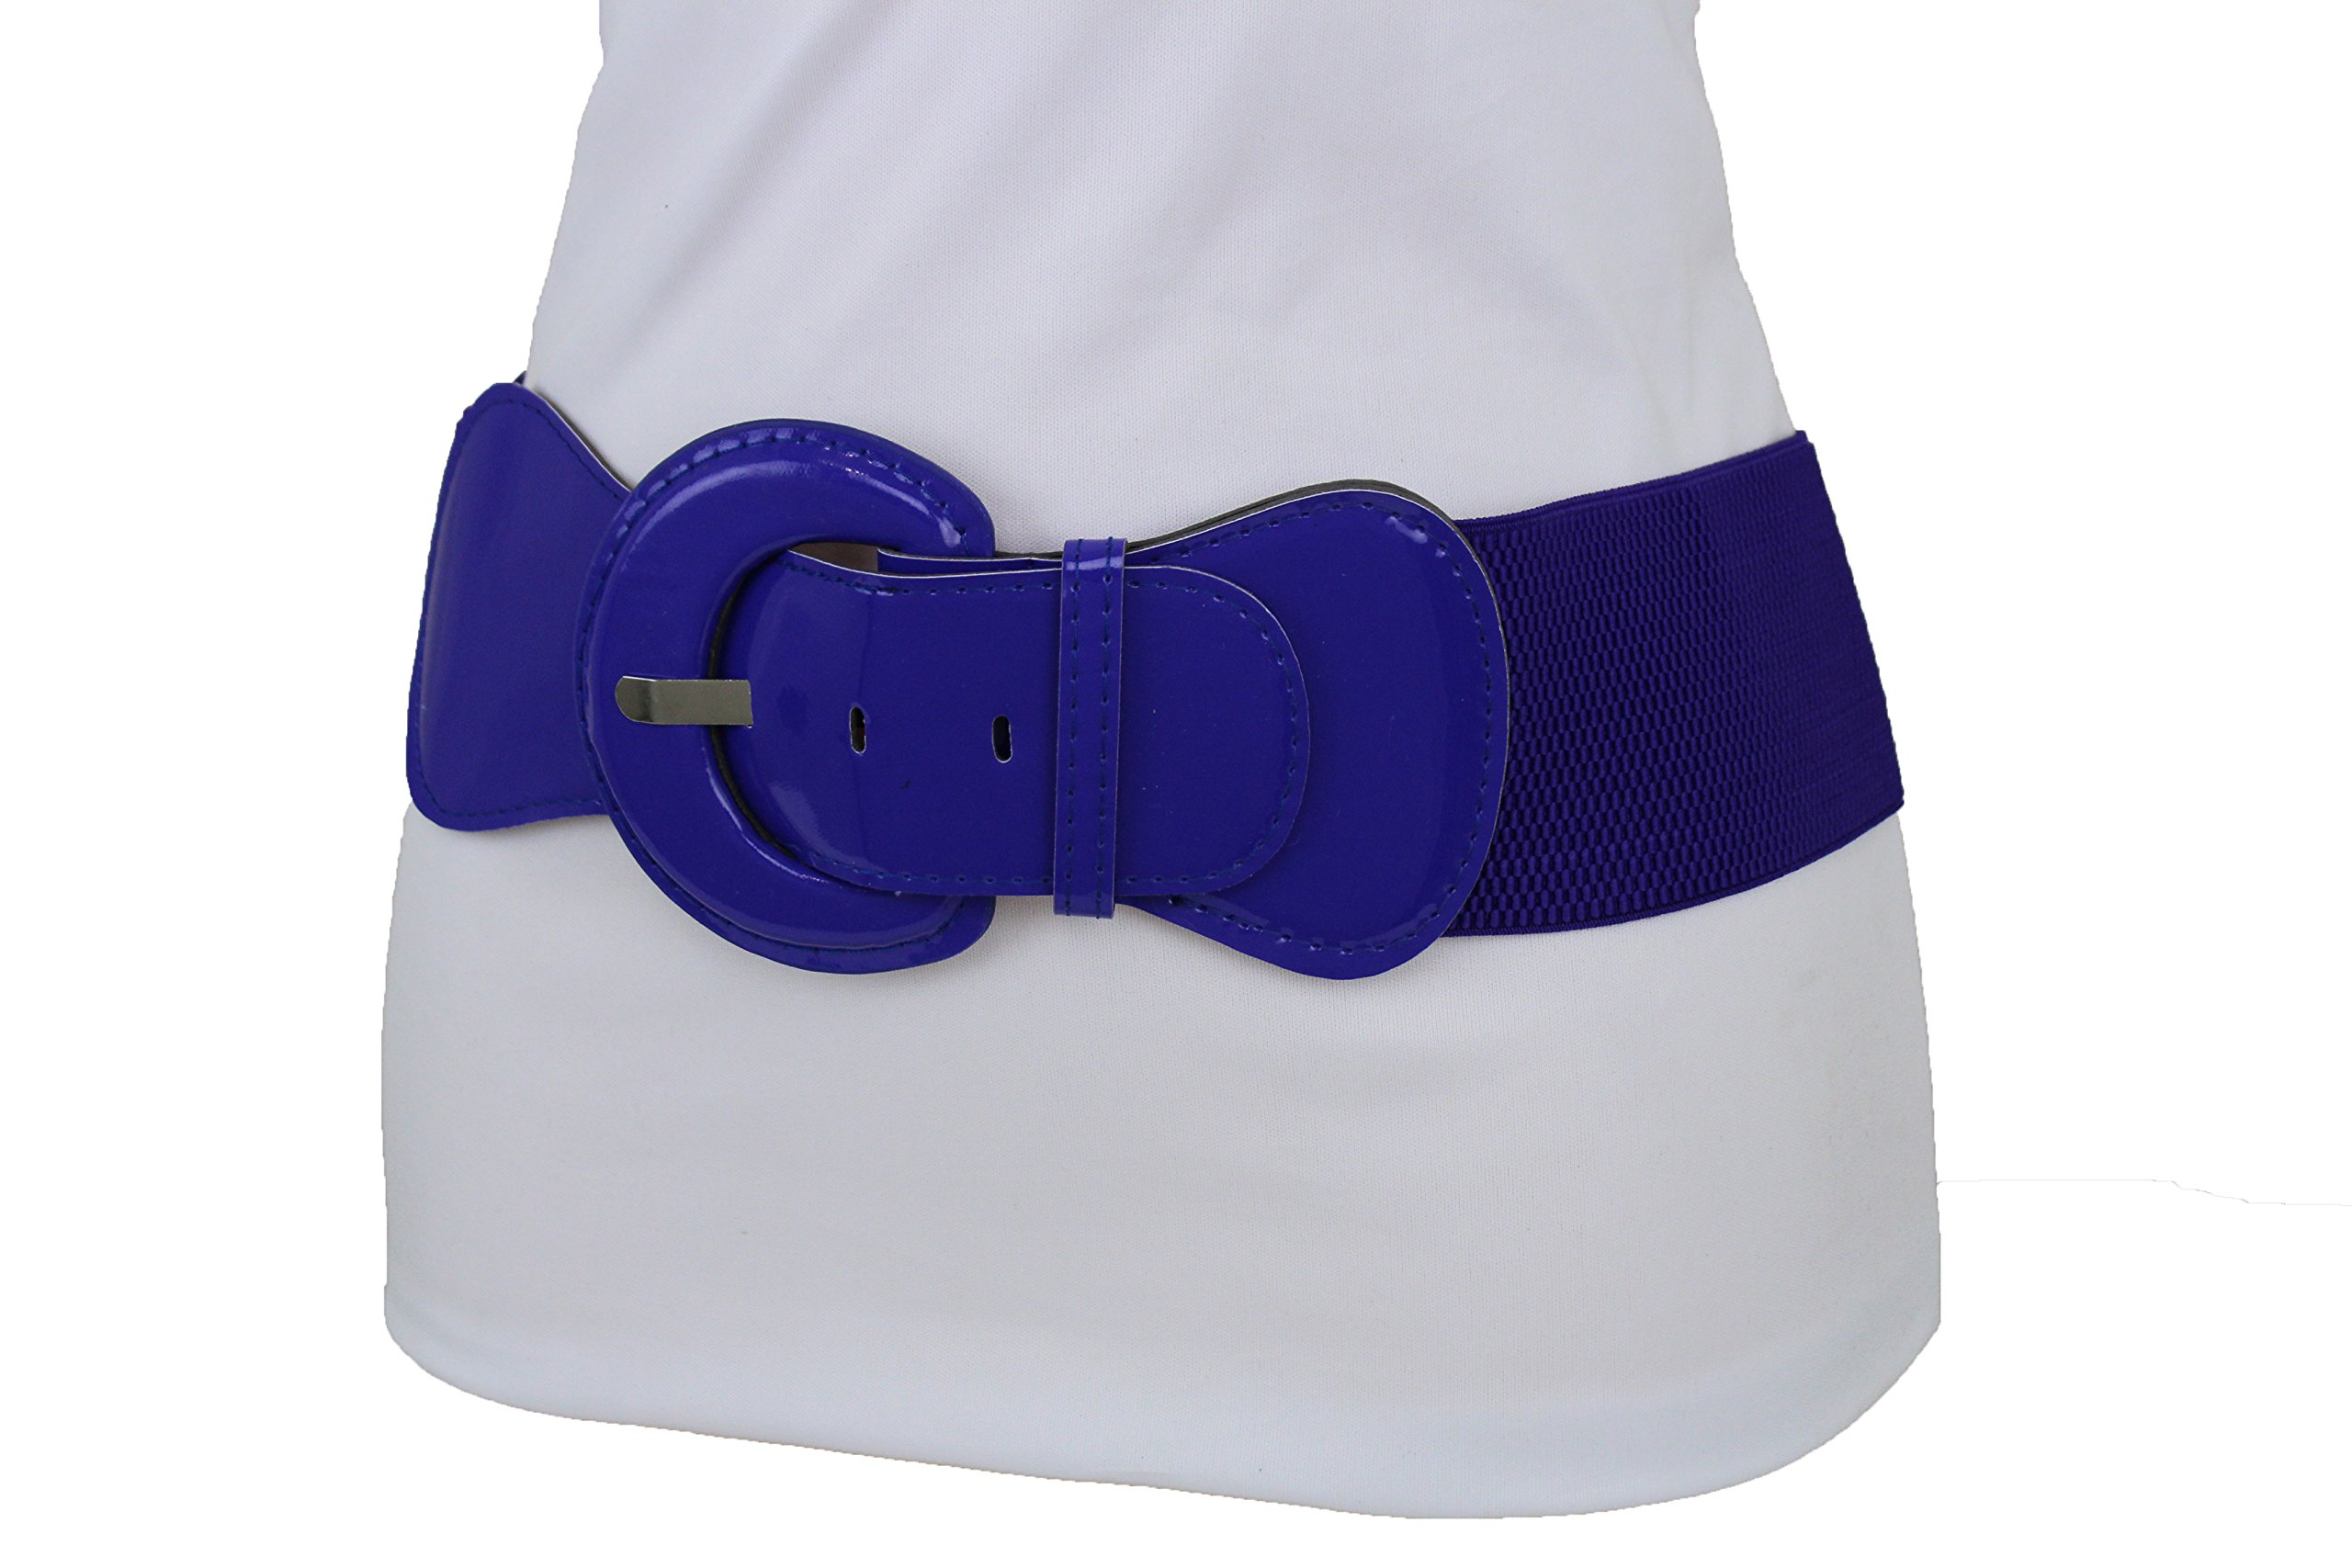 TFJ Women Fashion Elastic Belt Hip High Waist Big Round Buckle XS S M Violet Purple